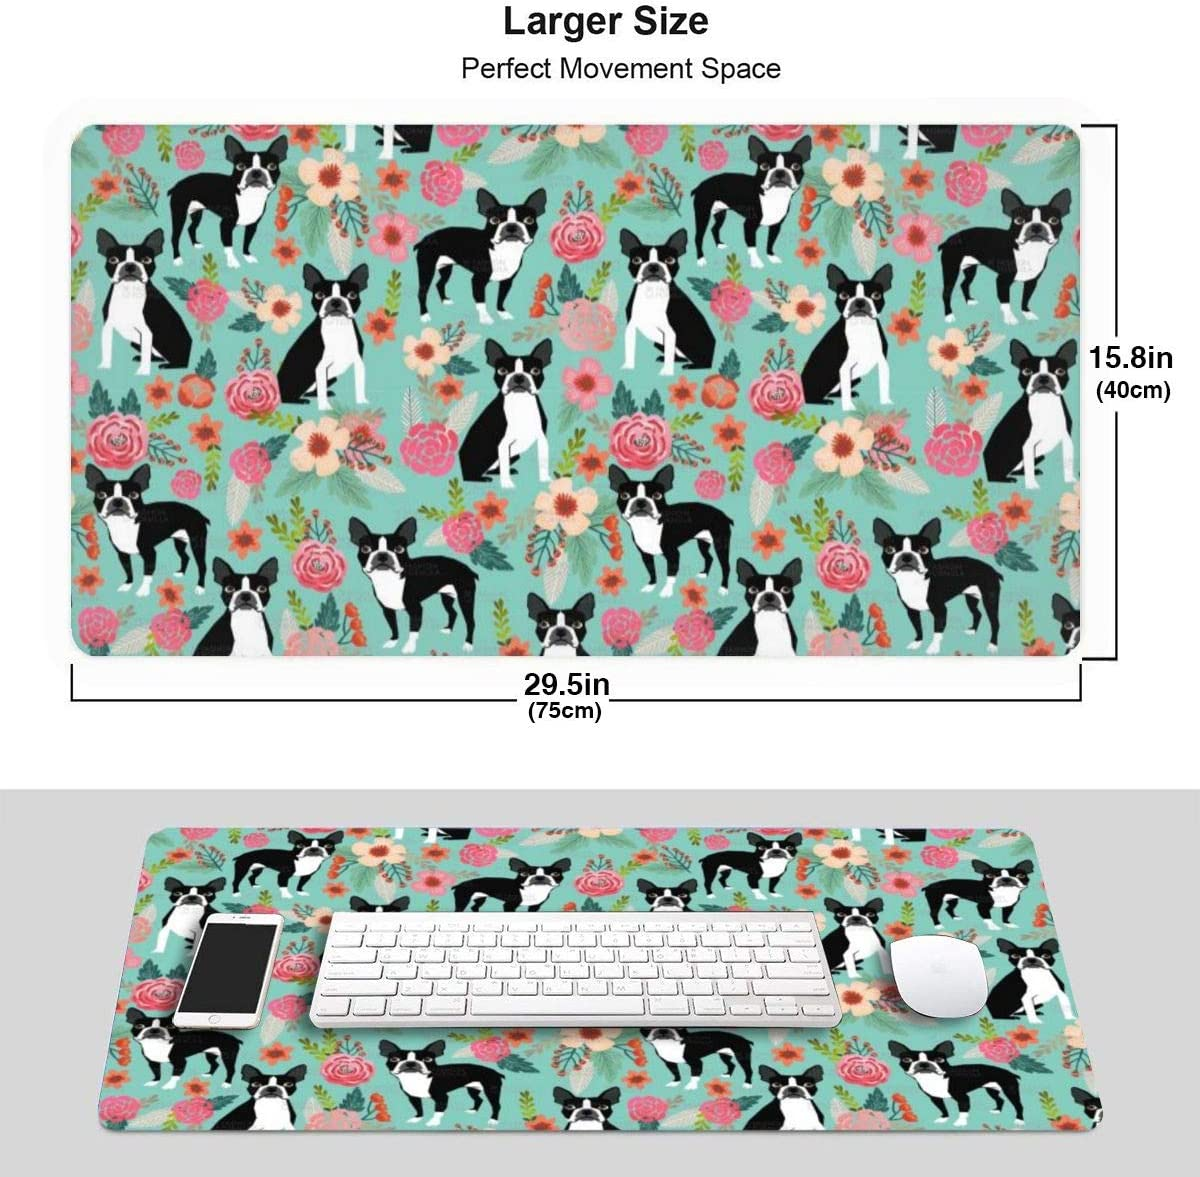 Waterproof Desk Pad Keyboard Mat with Non-Slip Base for Work /& Gaming 29.5x15.7In Office /& Home Extended Gaming Mouse Pad-Corgi with Florals Flowers Large XXL Professional Mousepad